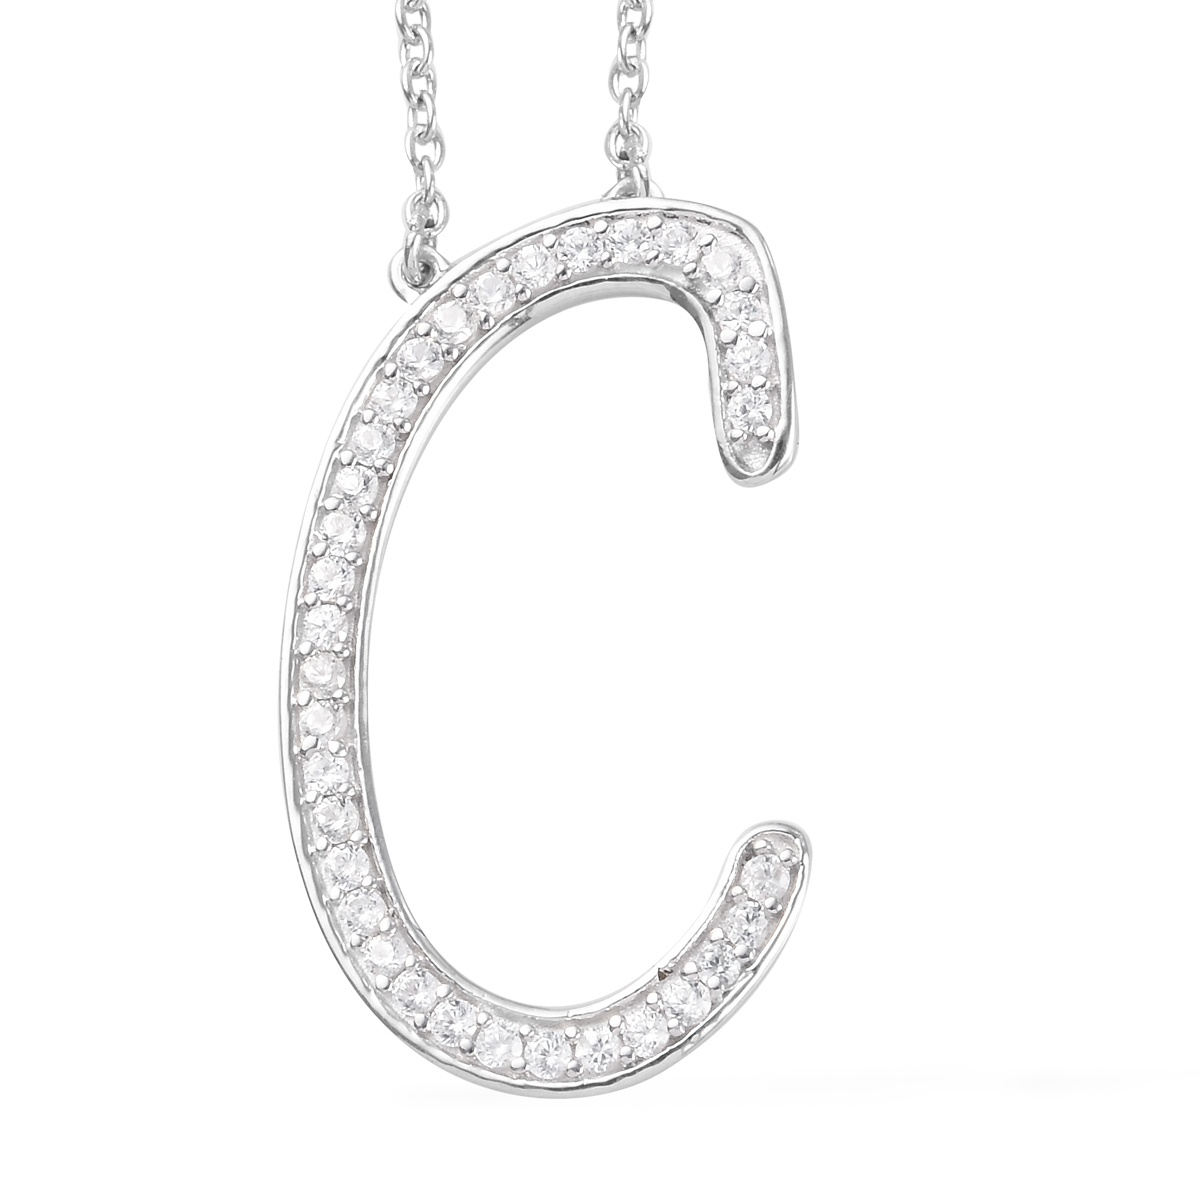 Initial C Necklace Featuring Cambodian White Zircon in Platinum Over Sterling Silver (20 in) 0.85 ctw